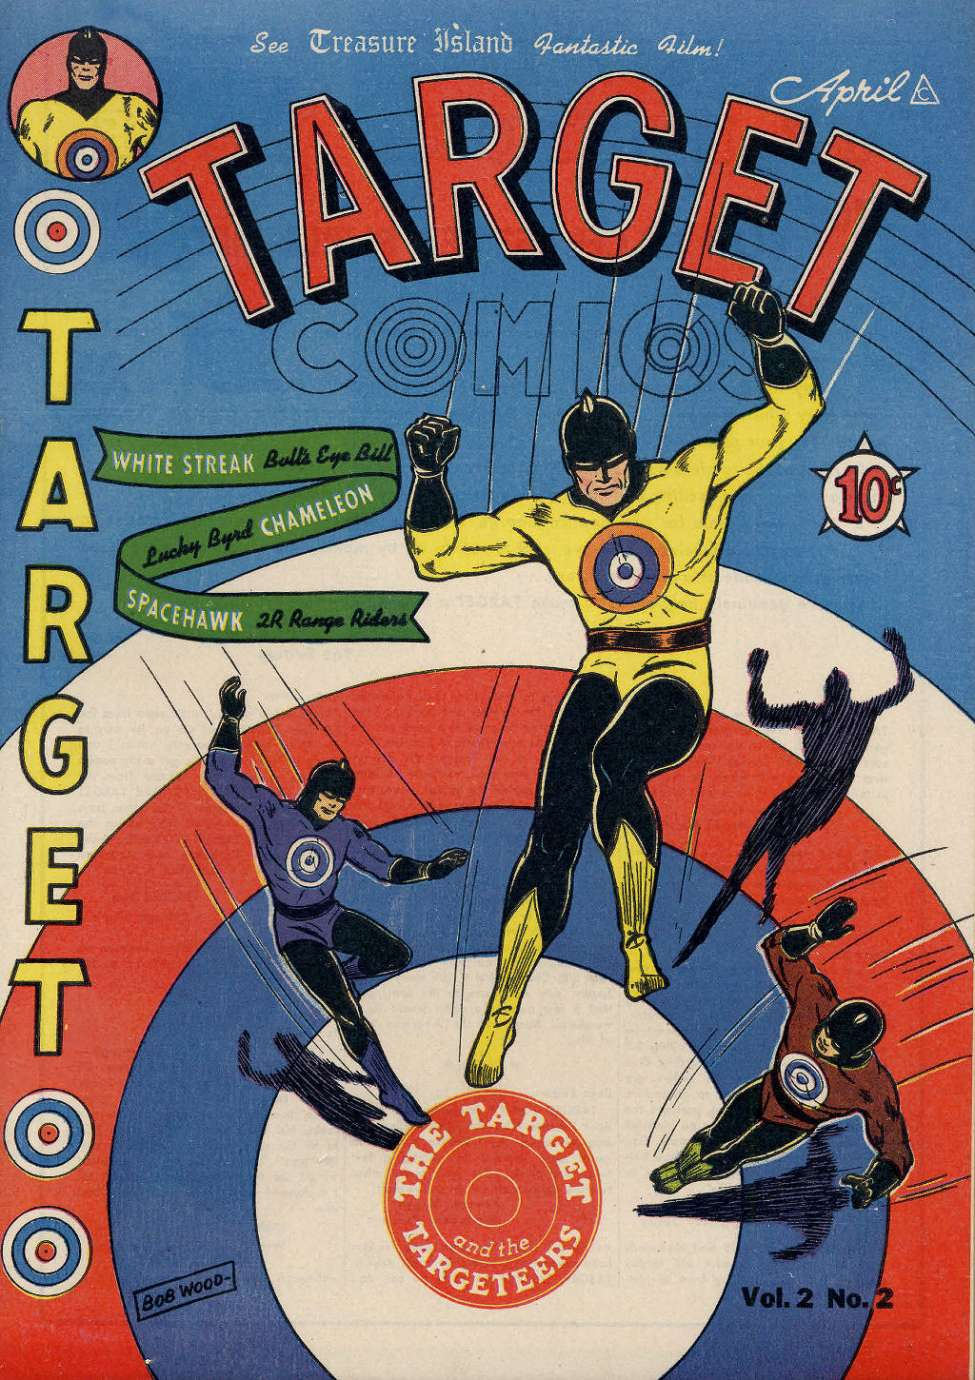 Comic Book Cover For Target Comics v2 2 [14]